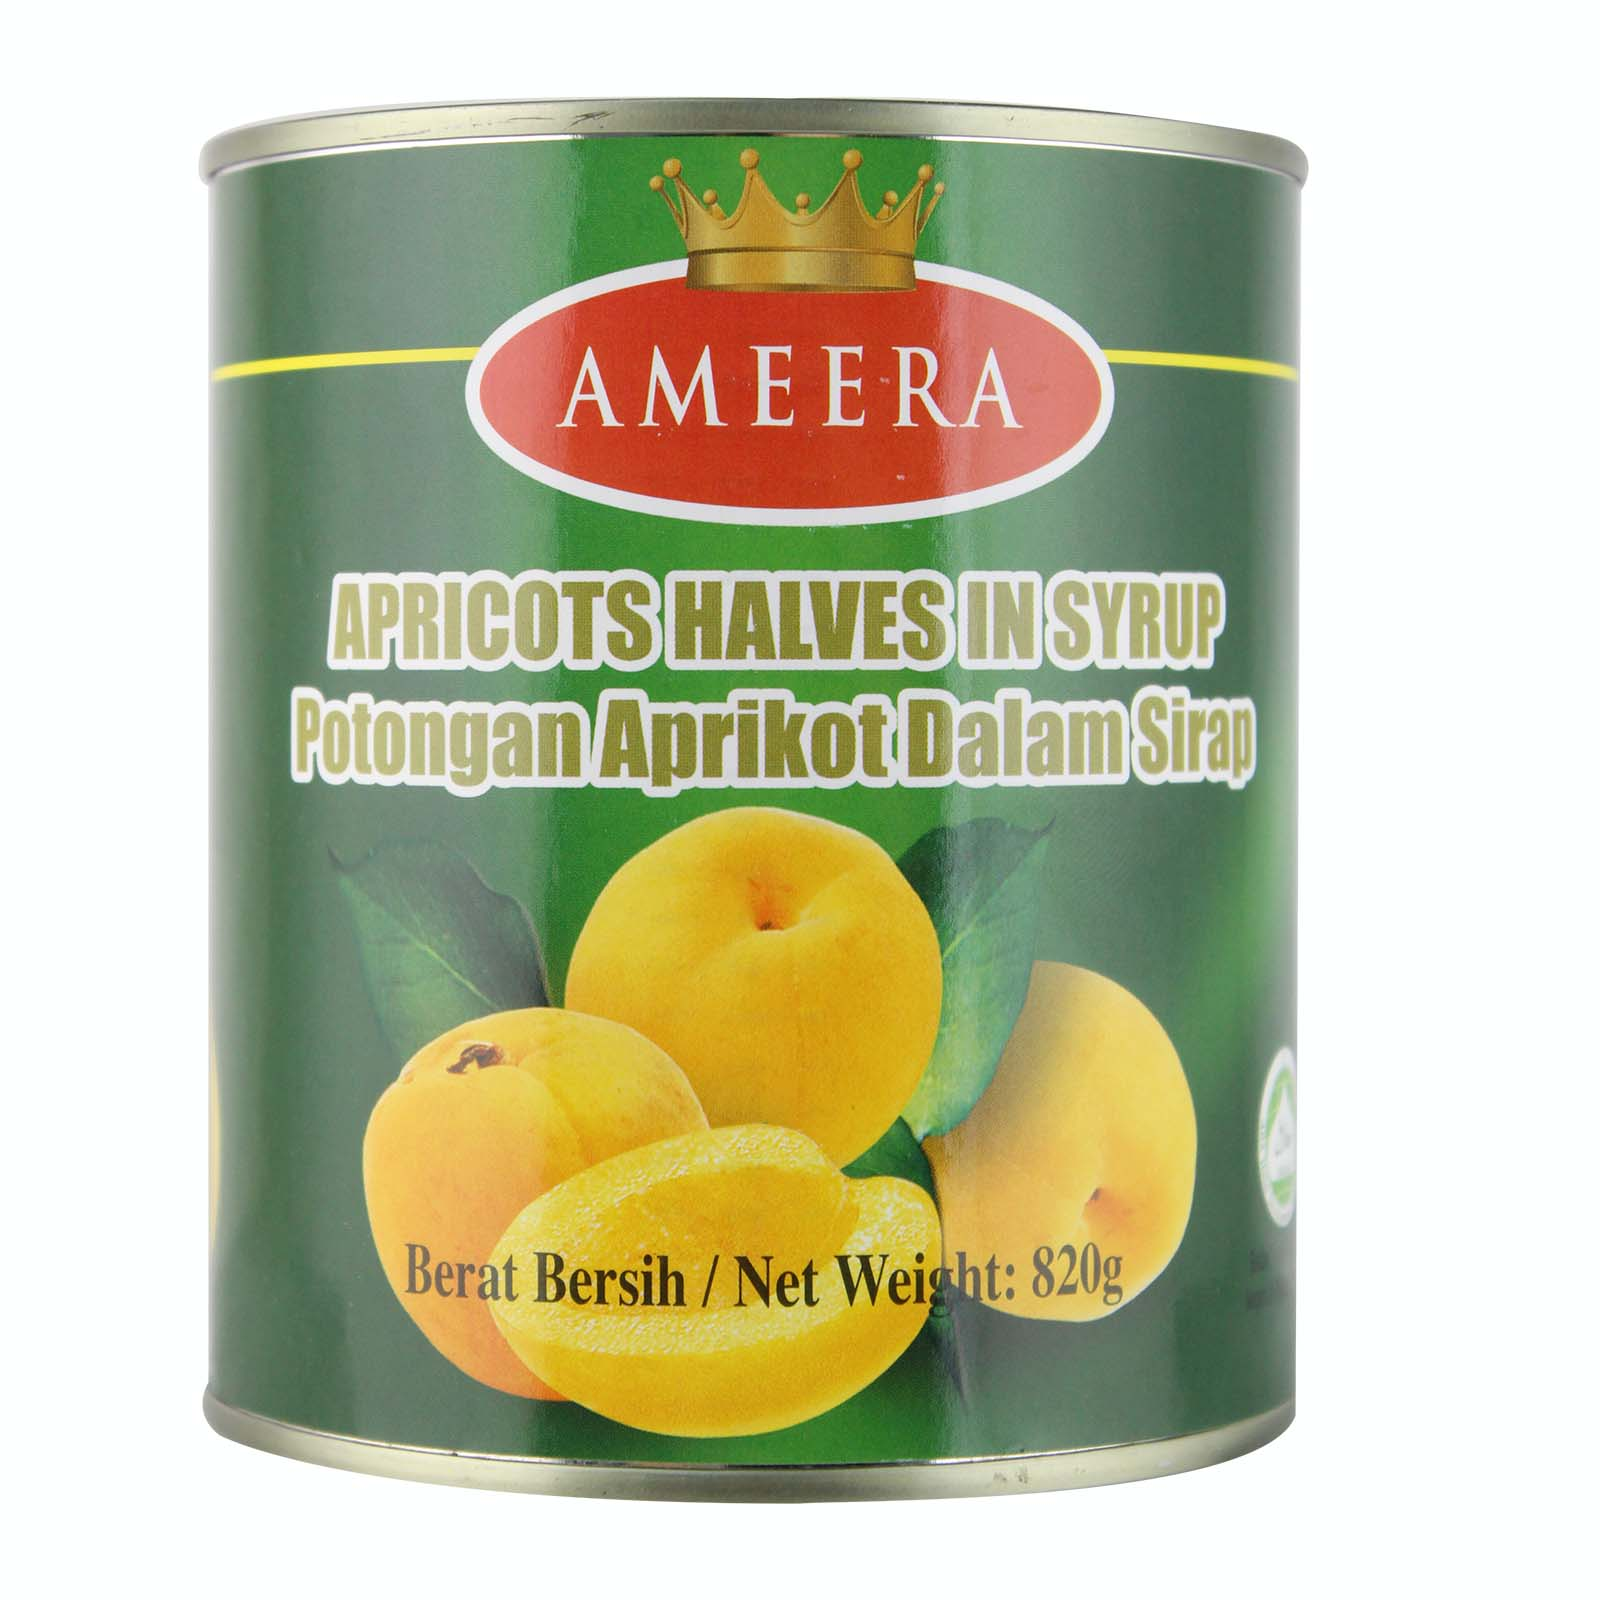 Ameera Apricots Halves In Syrup 820g